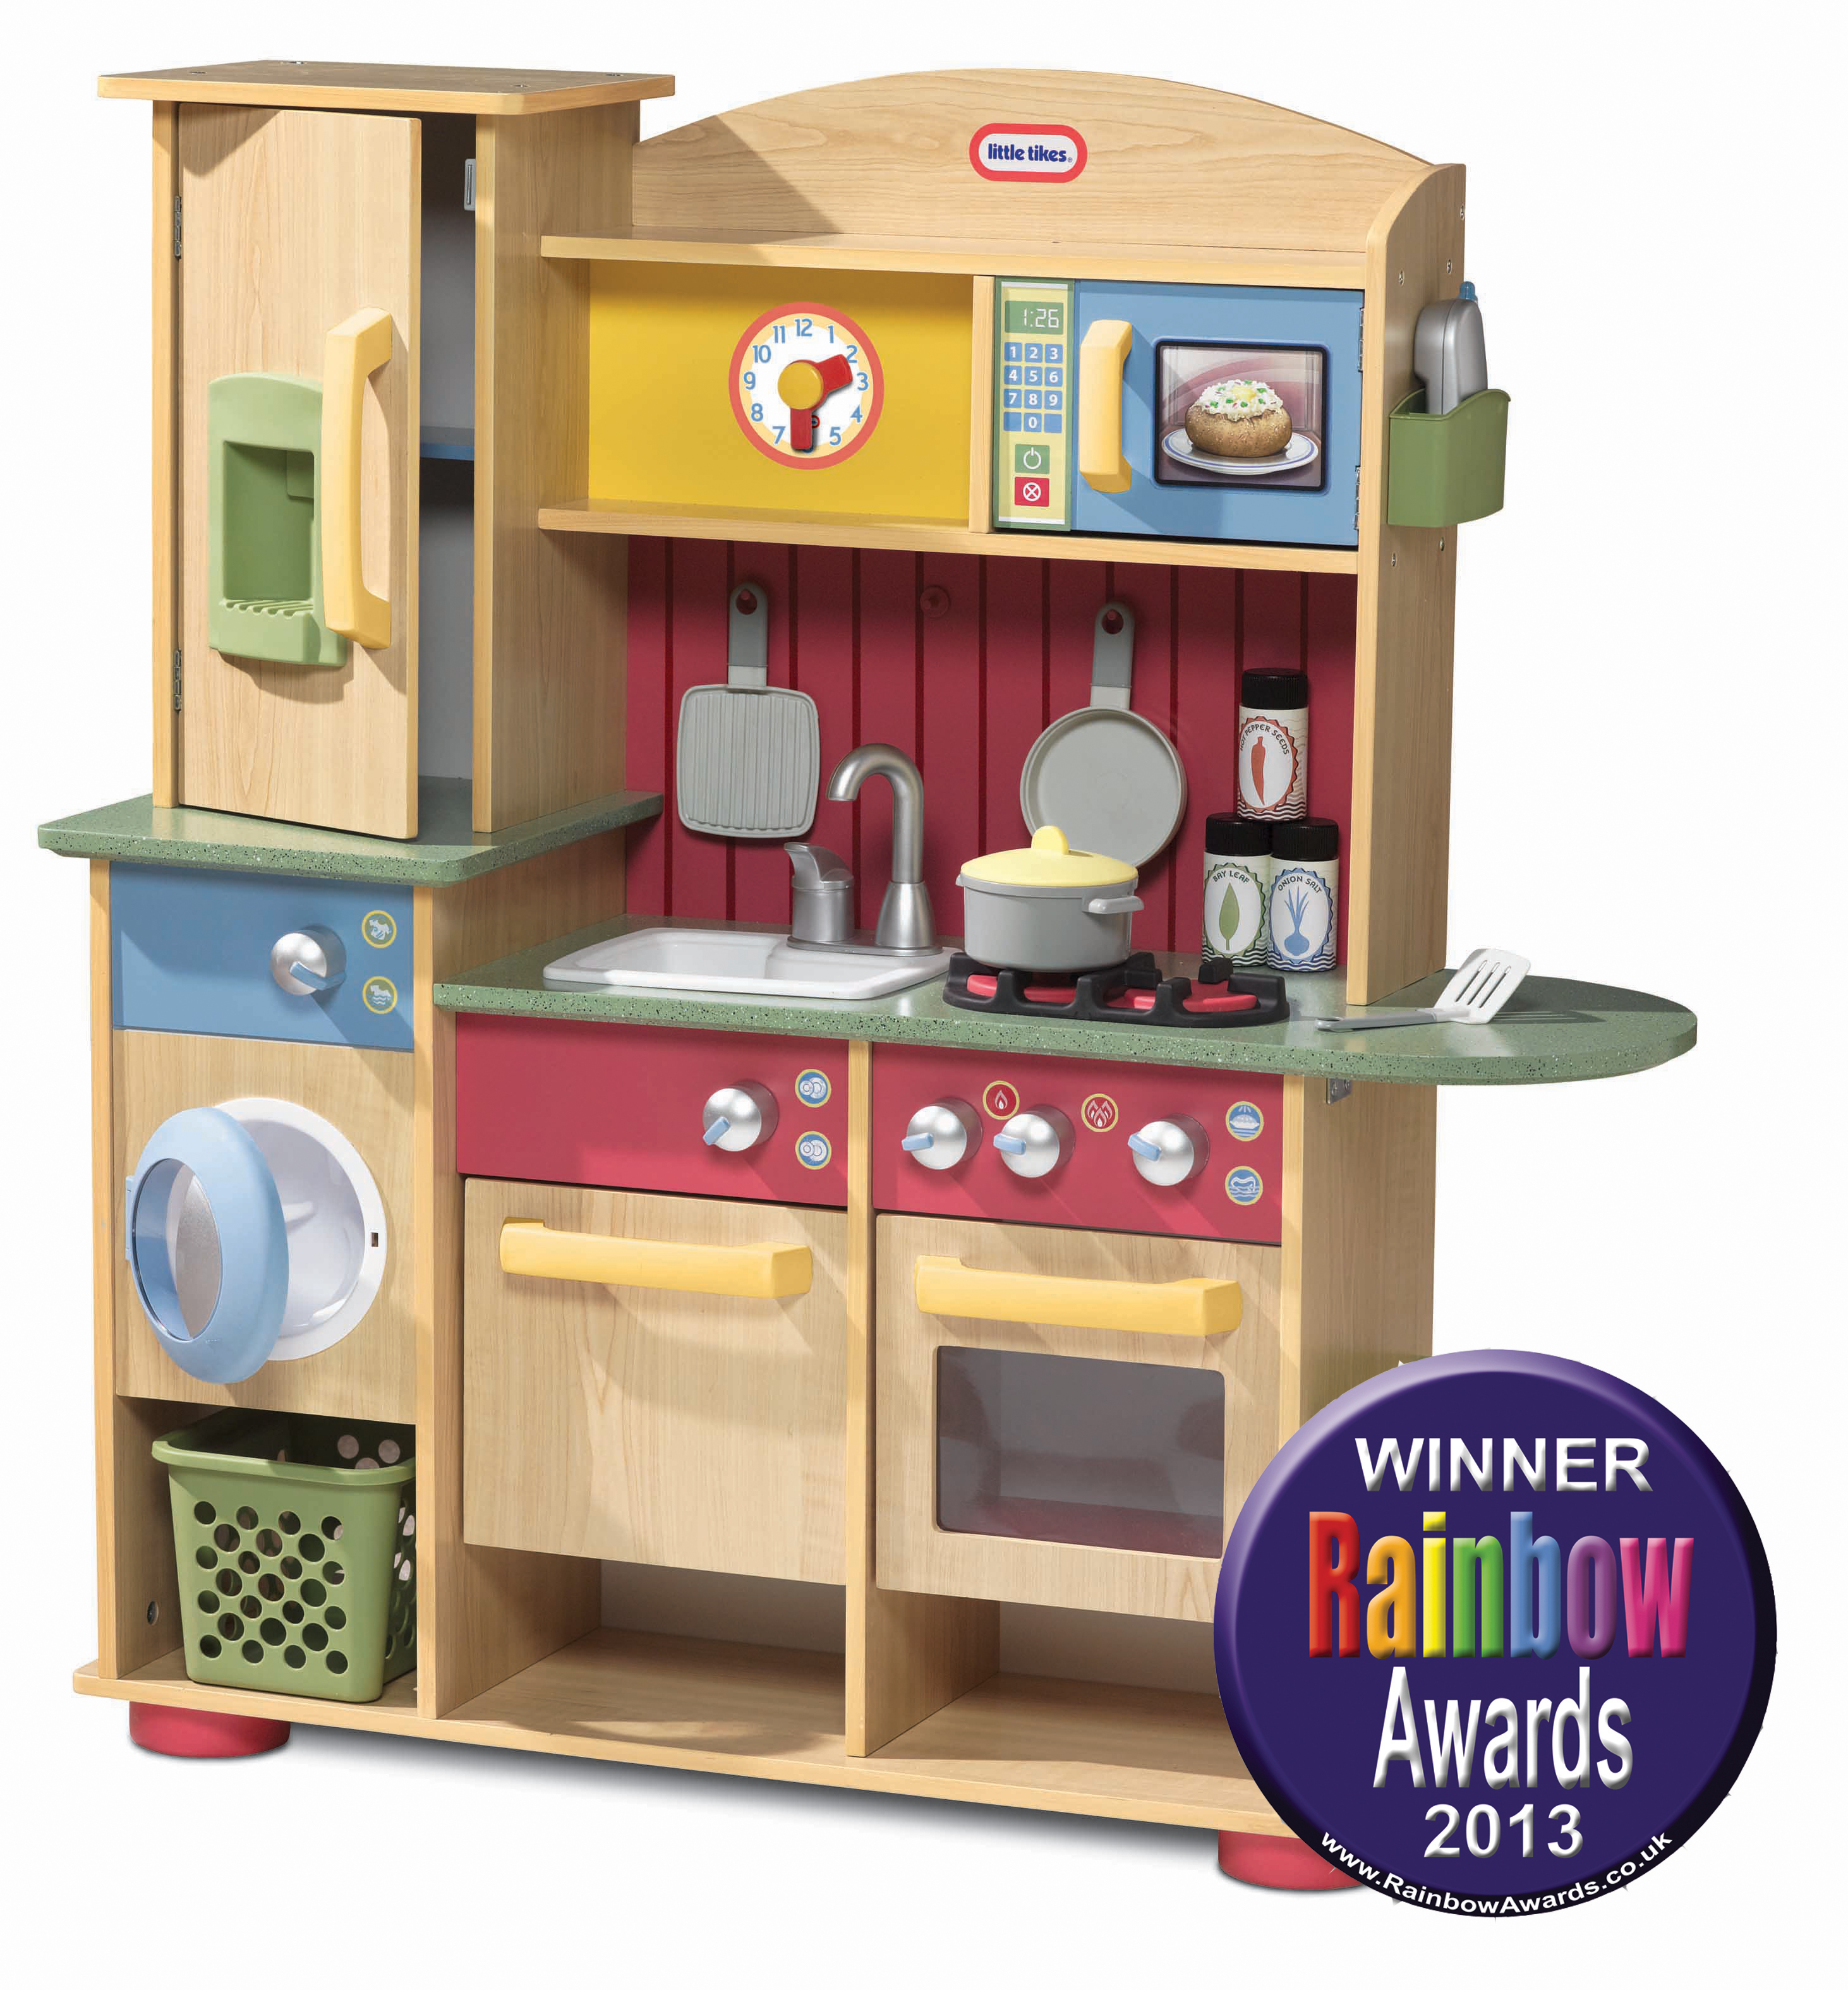 Little Tikes Cookin Creations Wood Kitchen in Rainbow Toy Awards